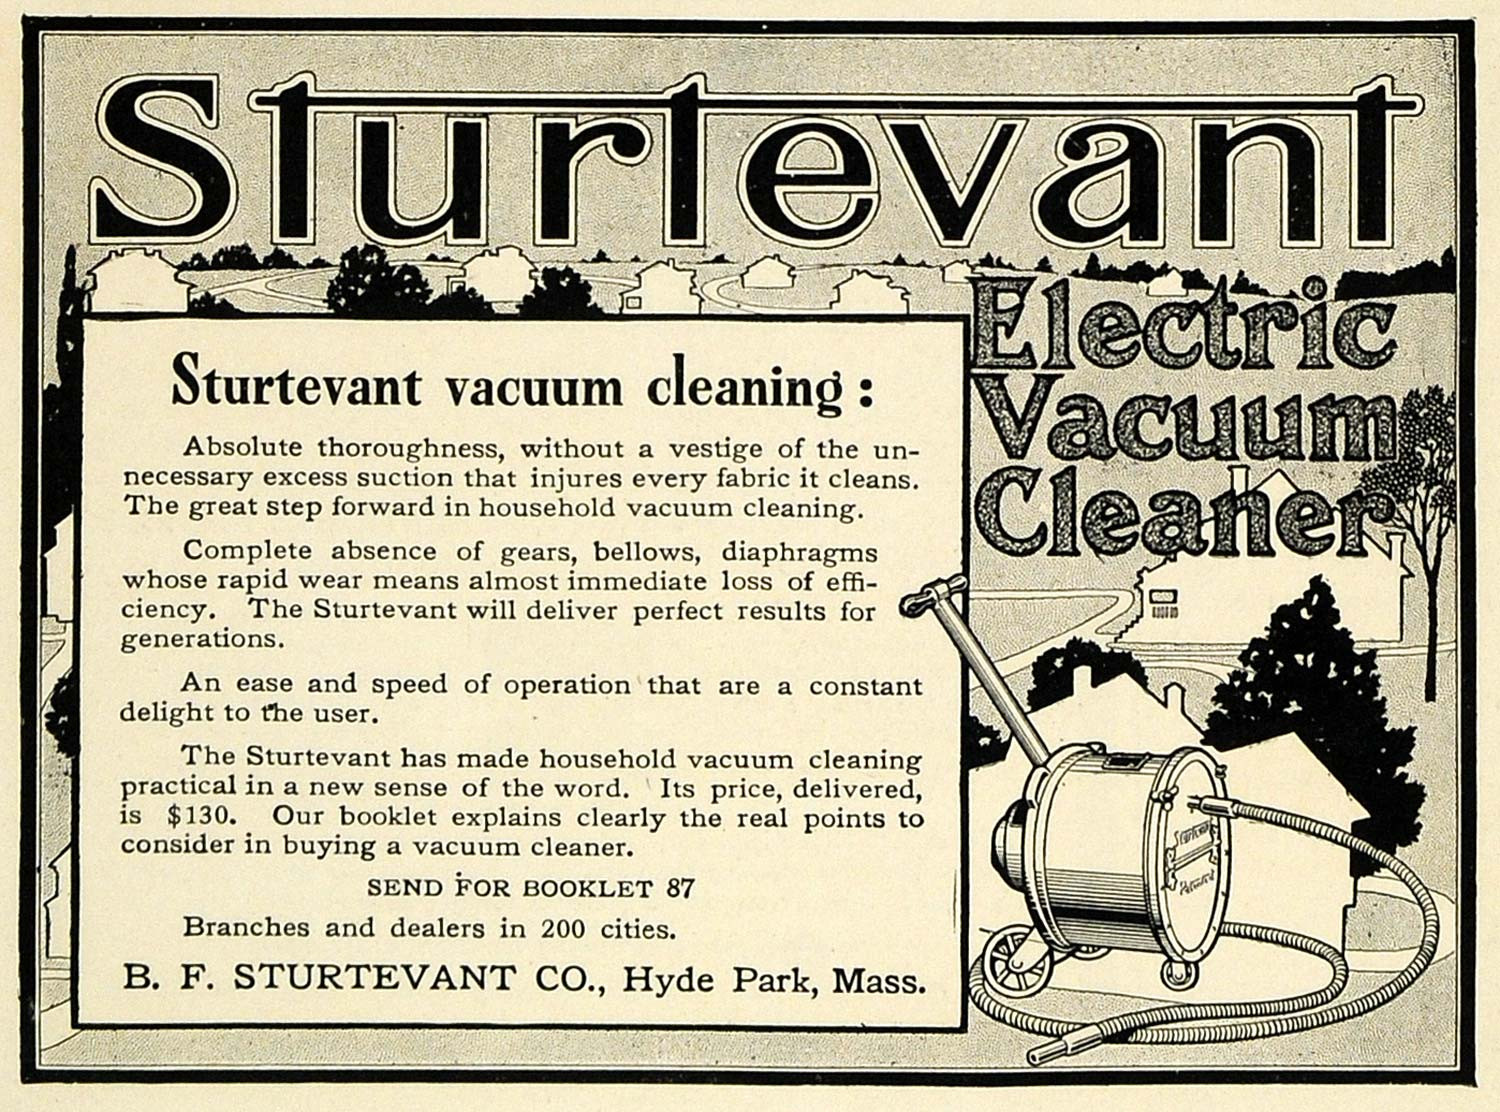 Advertisement (1911) for The Sturtevant Electric Vacuum Cleaner.